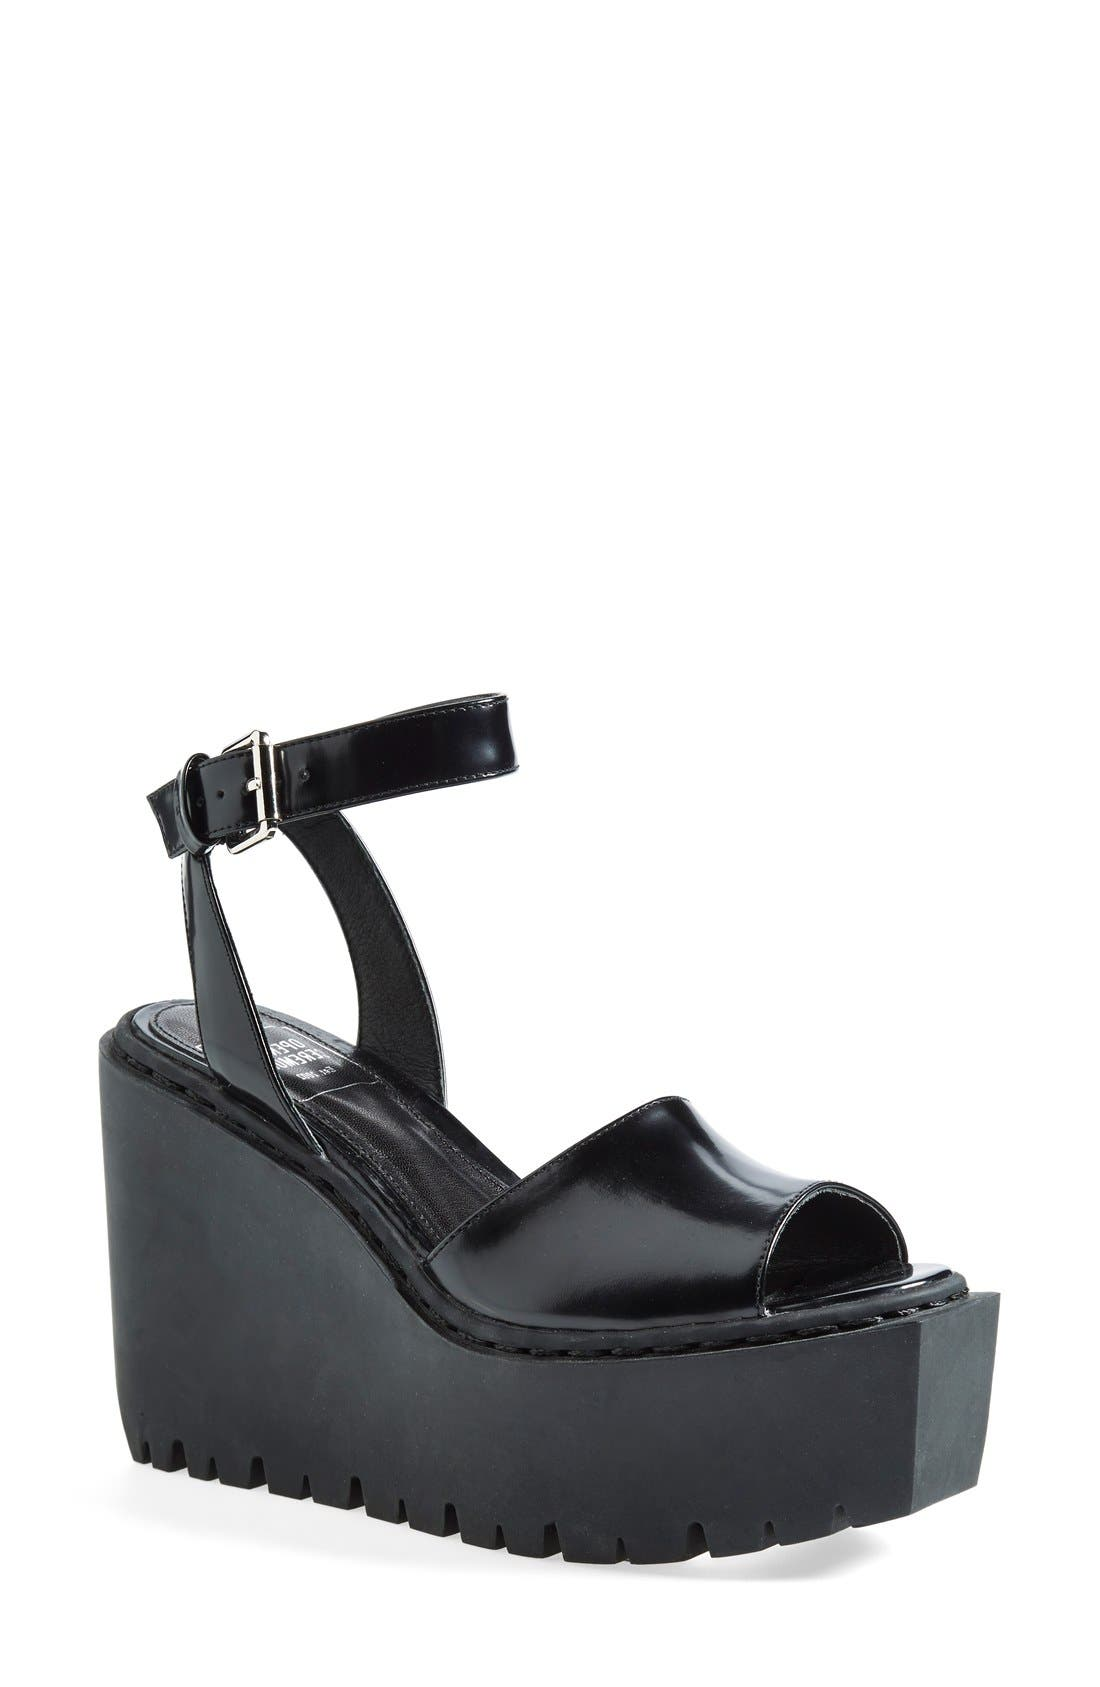 Main Image - Opening Ceremony 'Grunge' Wedge Ankle Strap Sandal (Women)